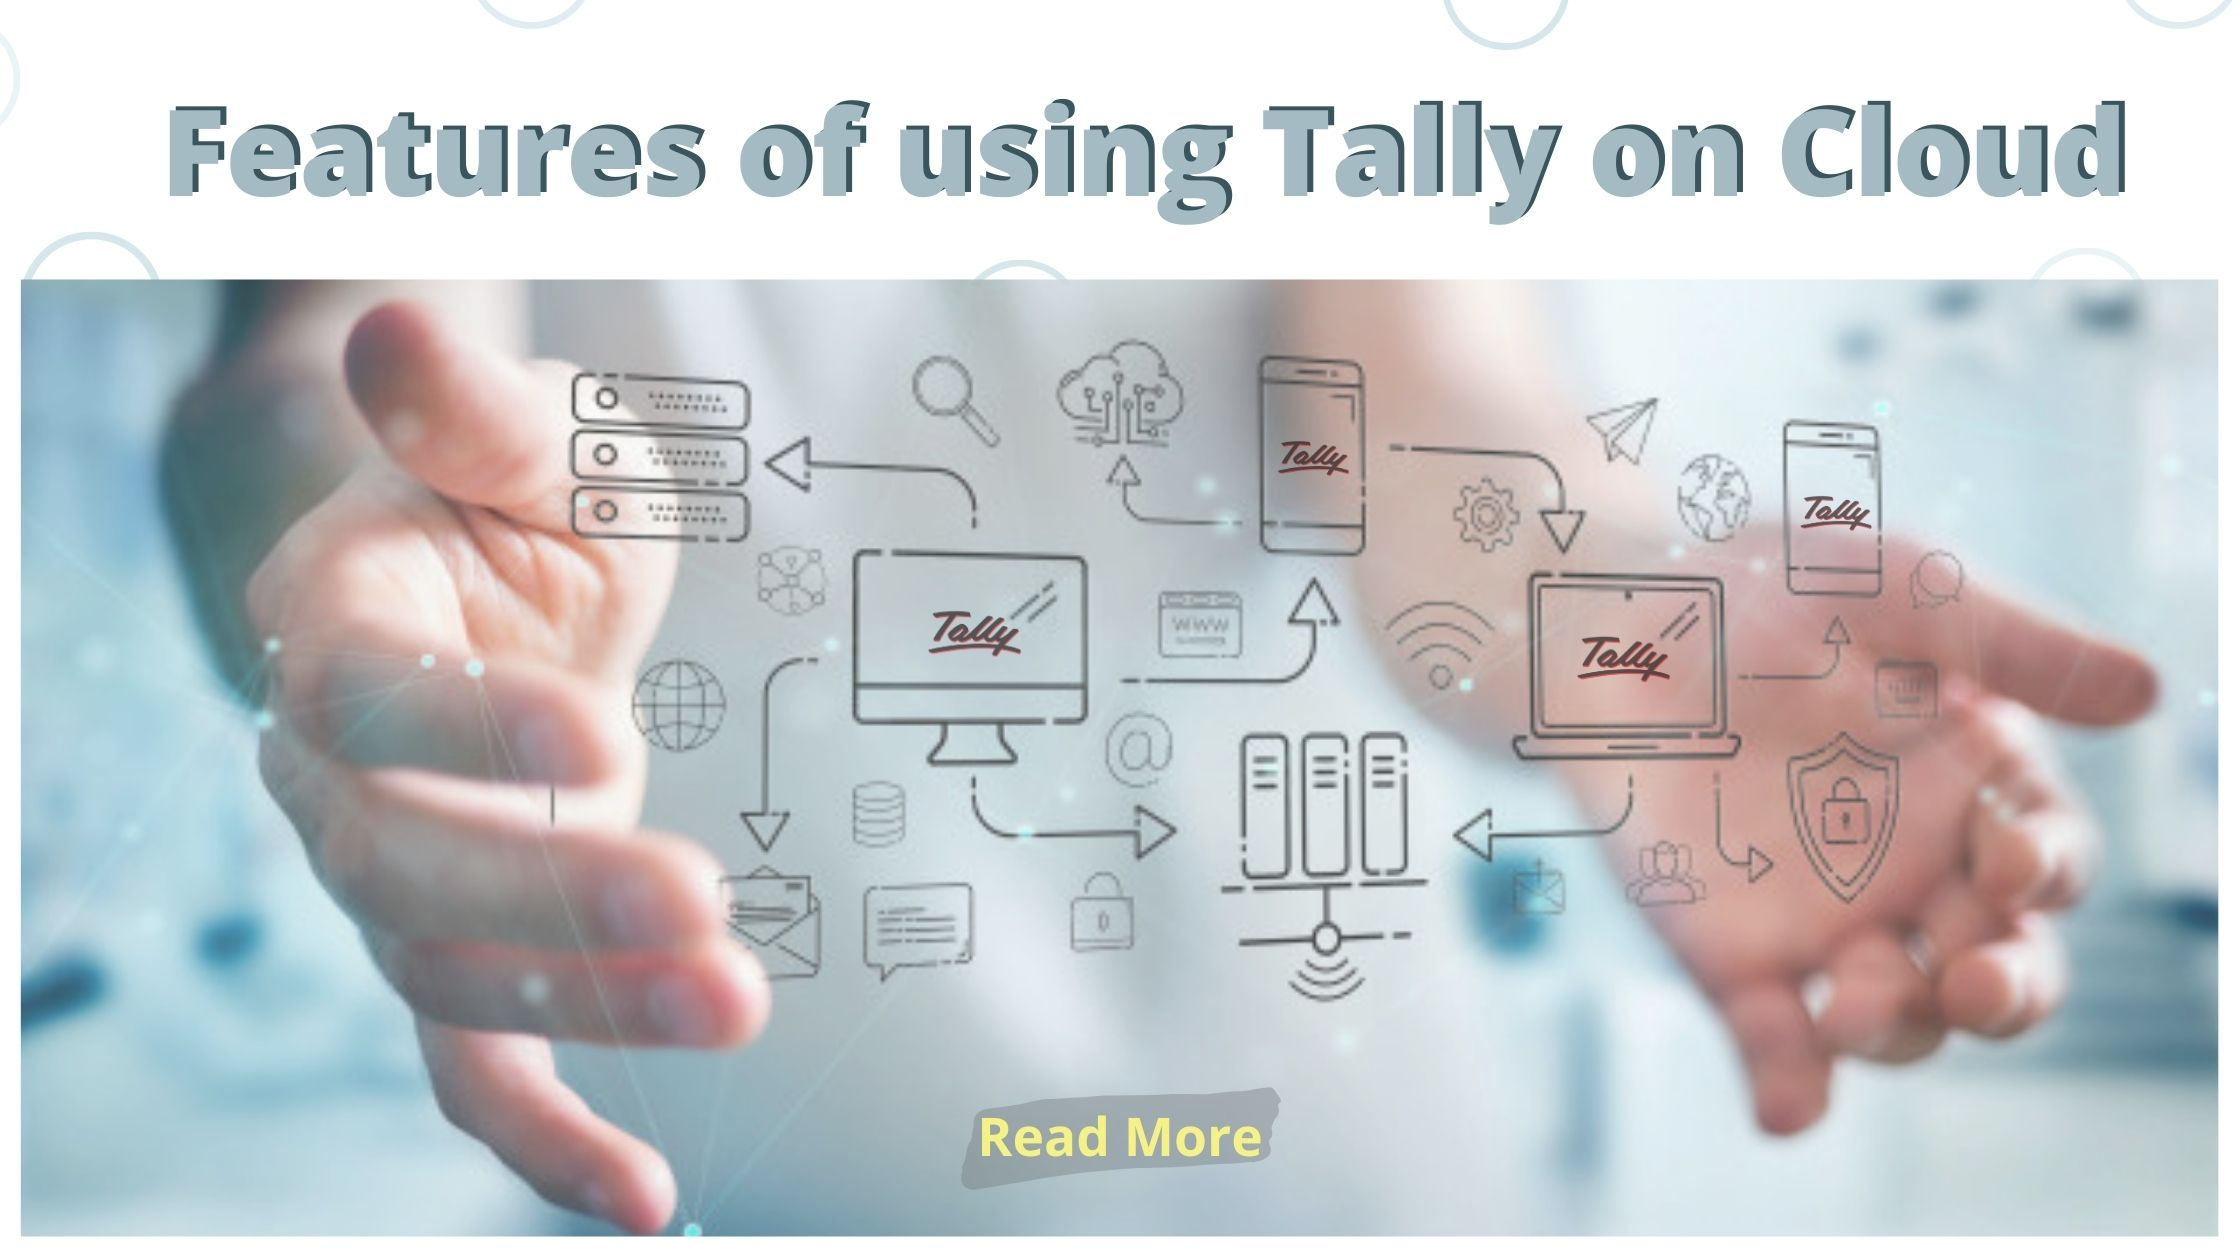 Features of using Tally on cloud